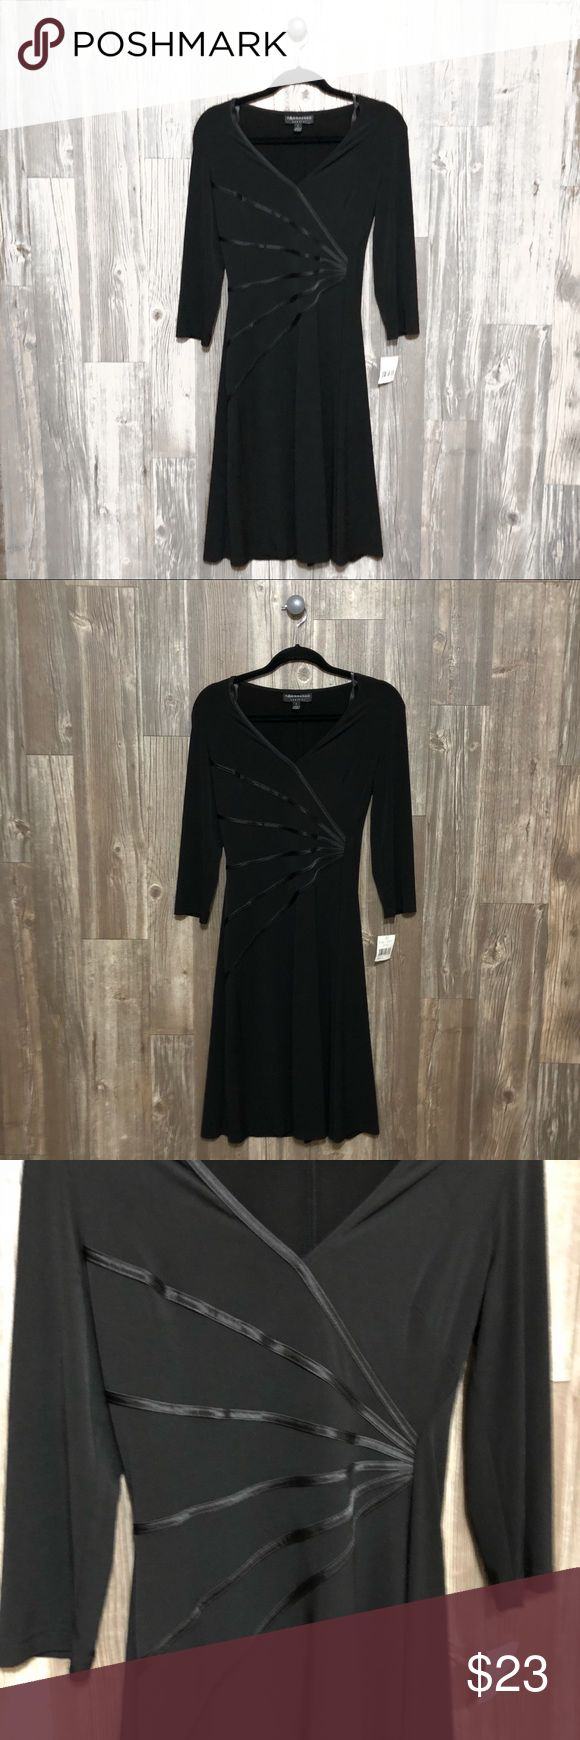 NWT Connected Apparel Black Dress New with tags Connected Apparel Black Dress! Has gorgeous faux leather lines accentuating your waist. Great condition. Size 8! Measurements: Connected Apparel Dresses